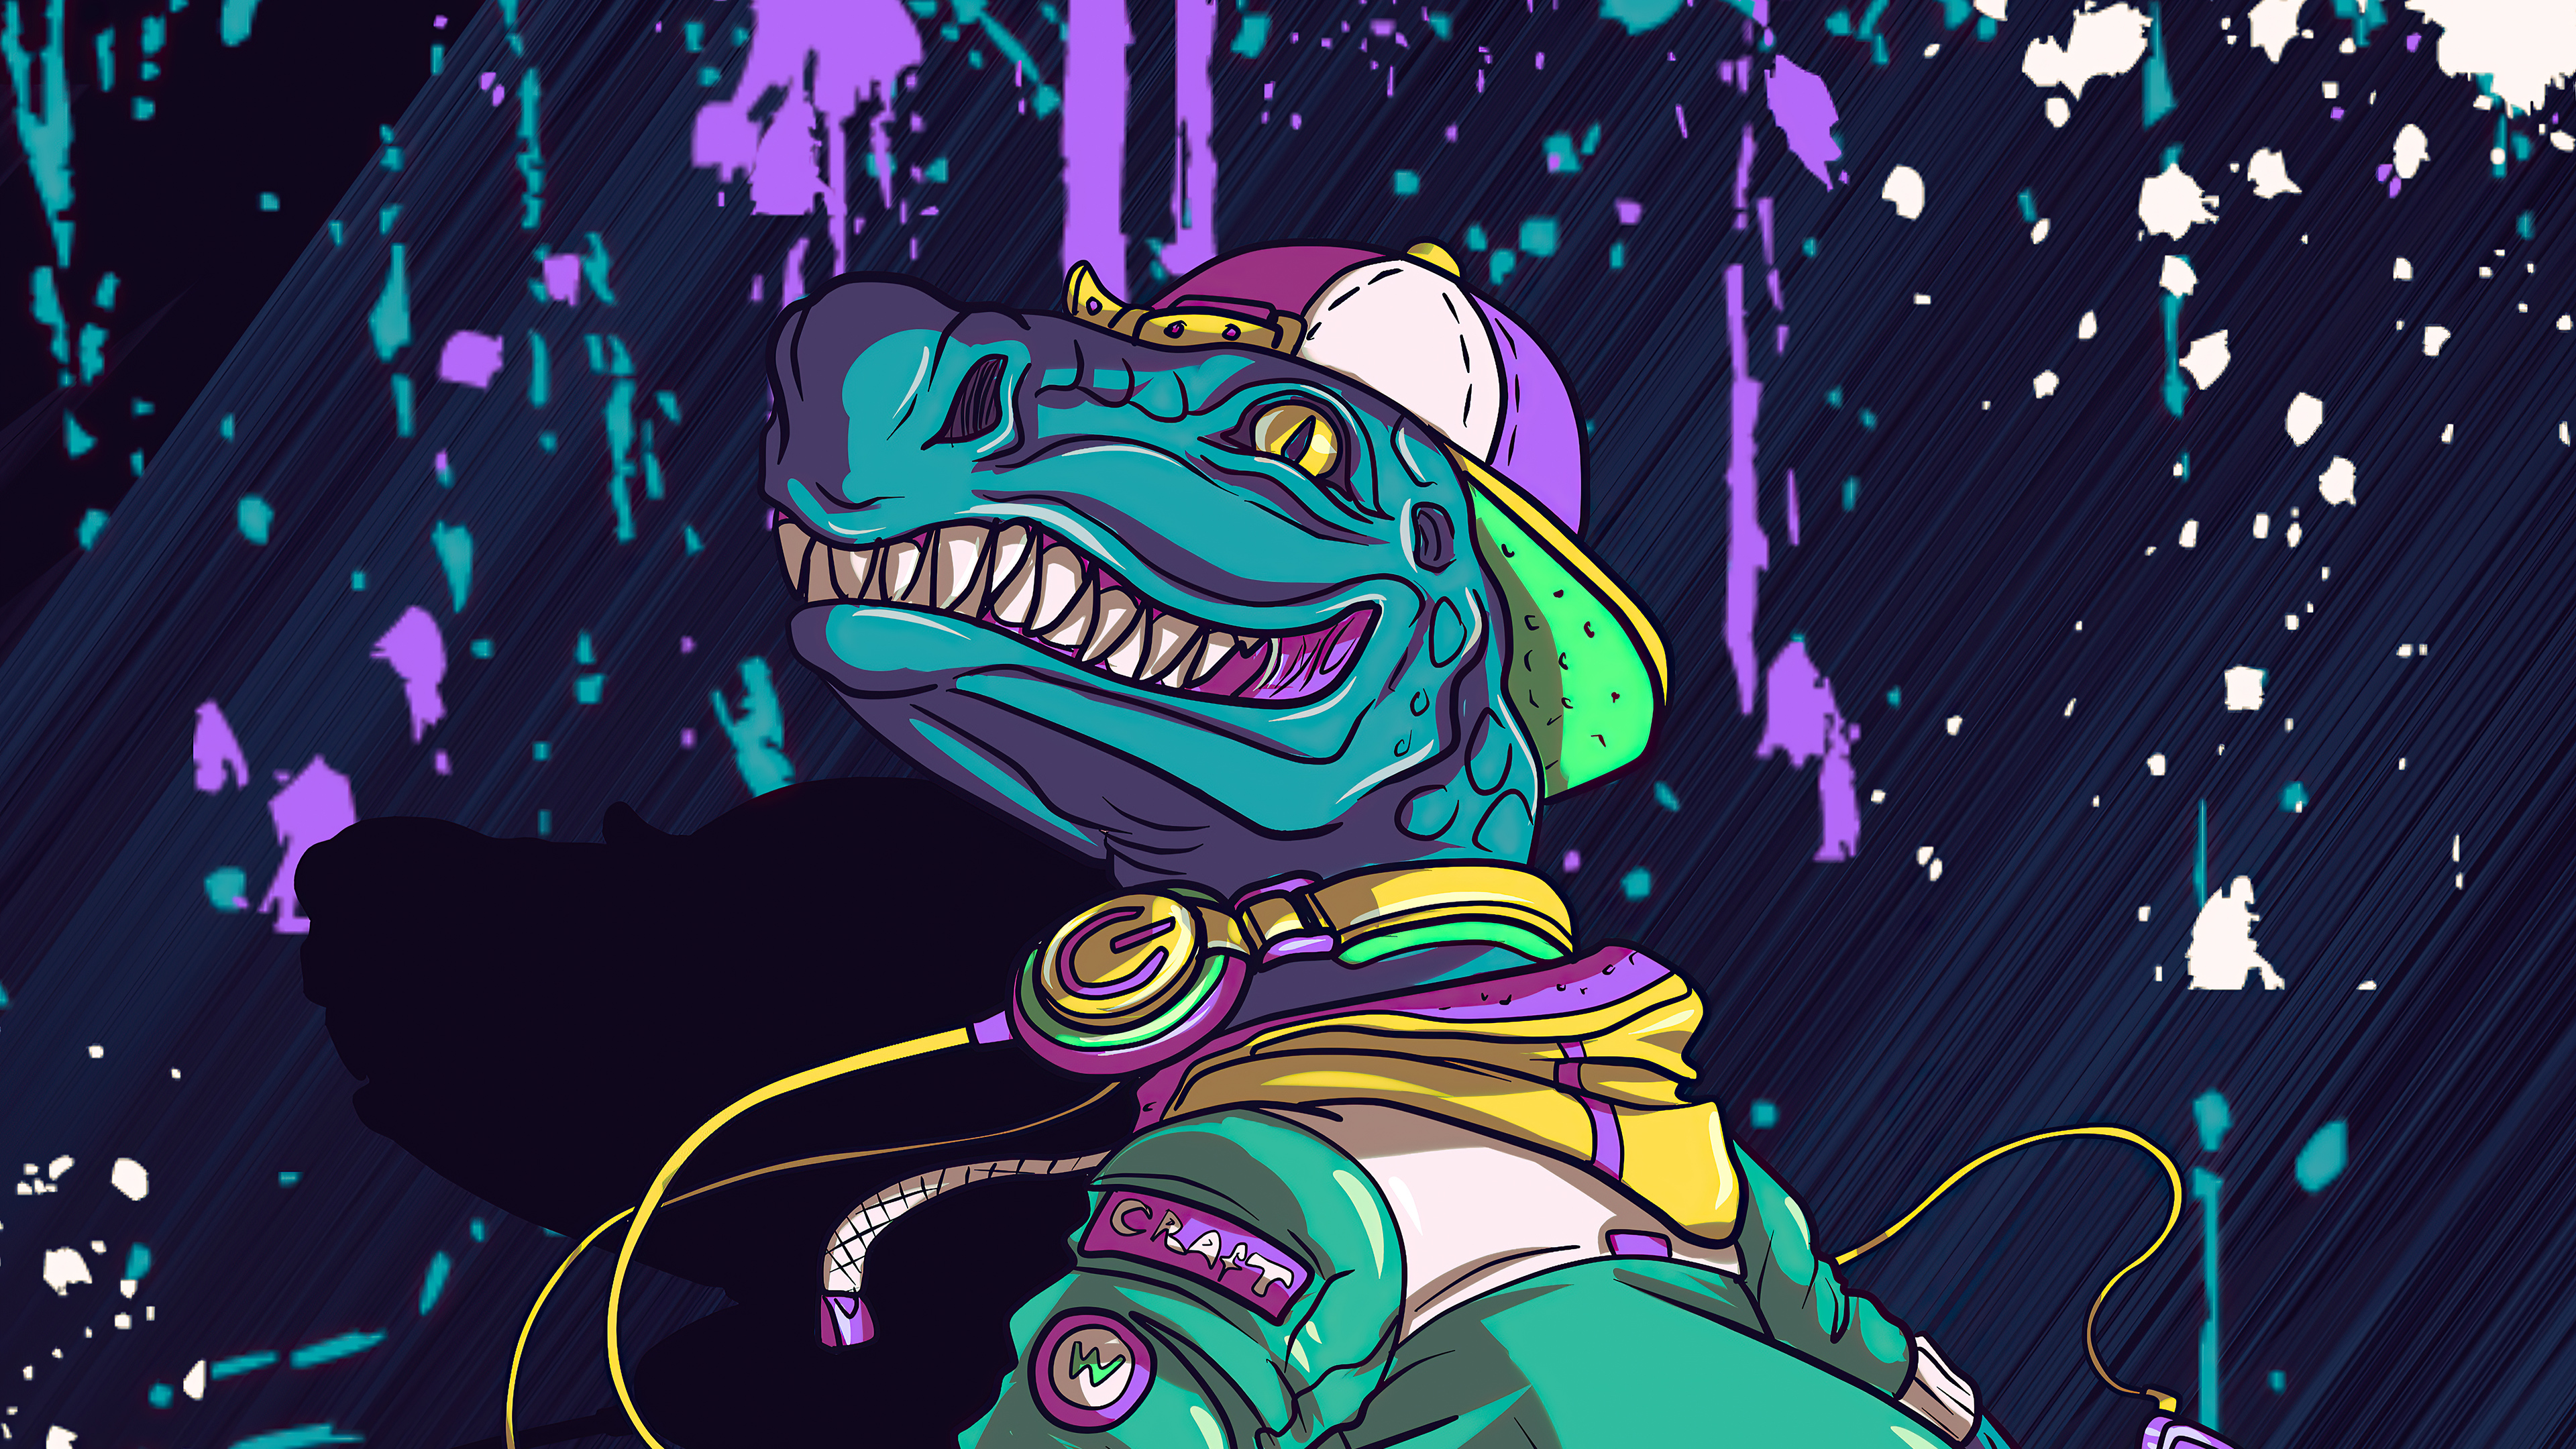 Cool Crocodile Skating Hd Artist 4k Wallpapers Images Backgrounds Photos And Pictures